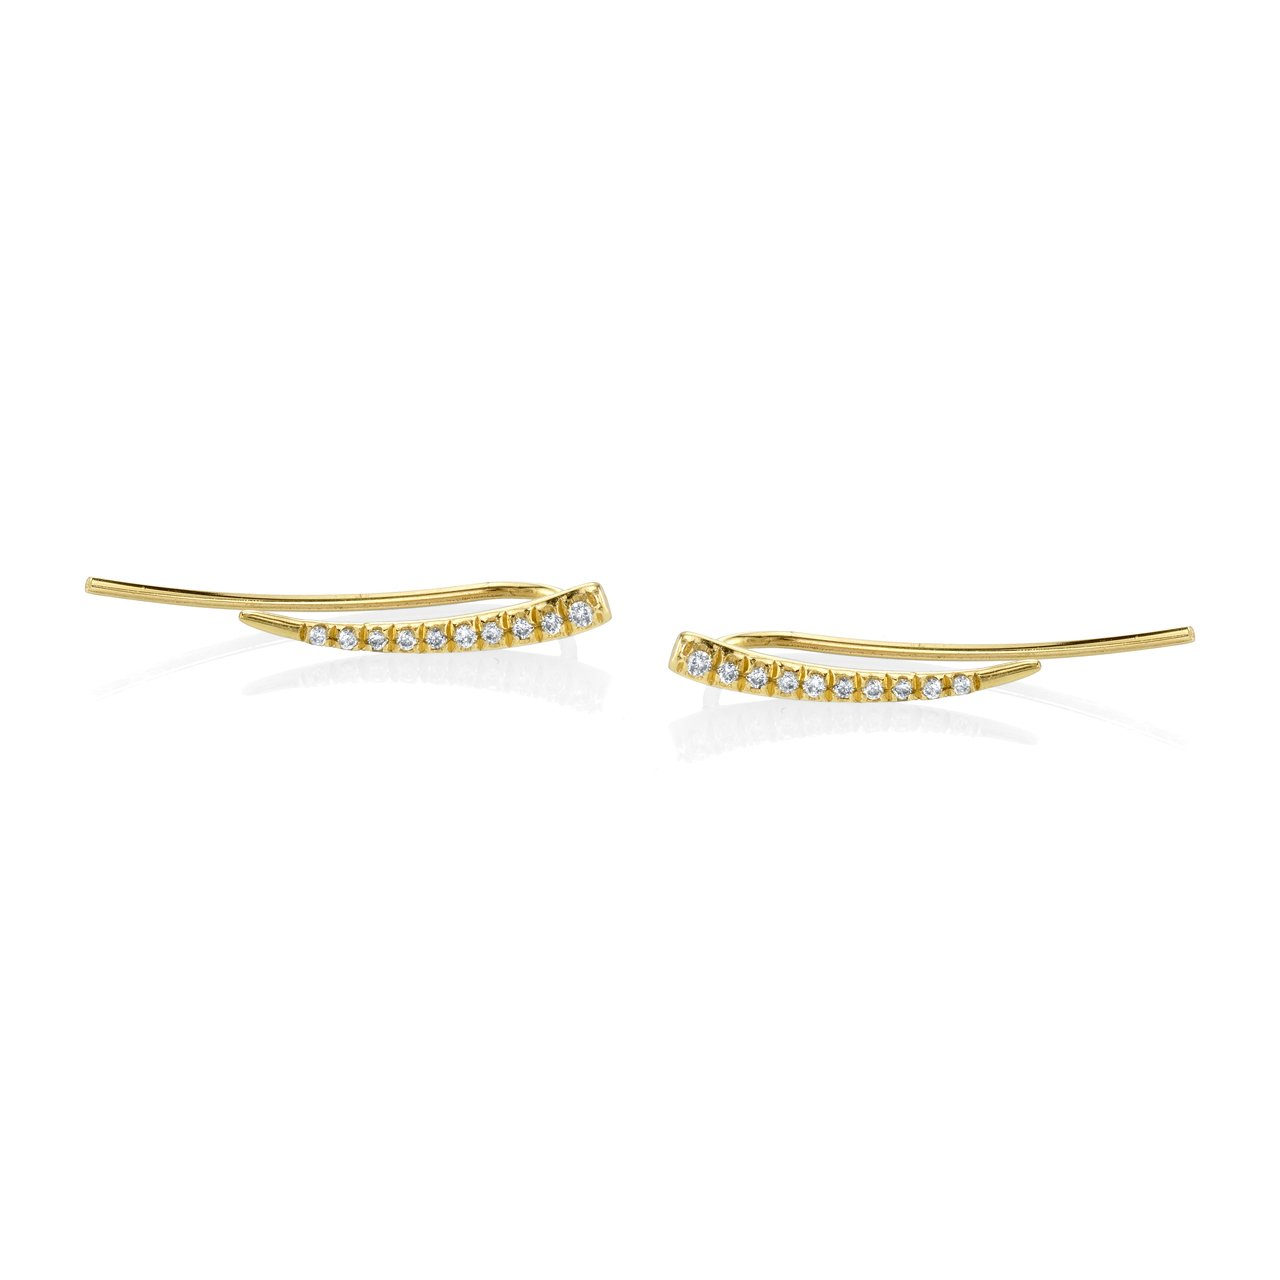 Gabriela Artigas Crawling Tusk Earrings with White Pave Diamonds(Pair)